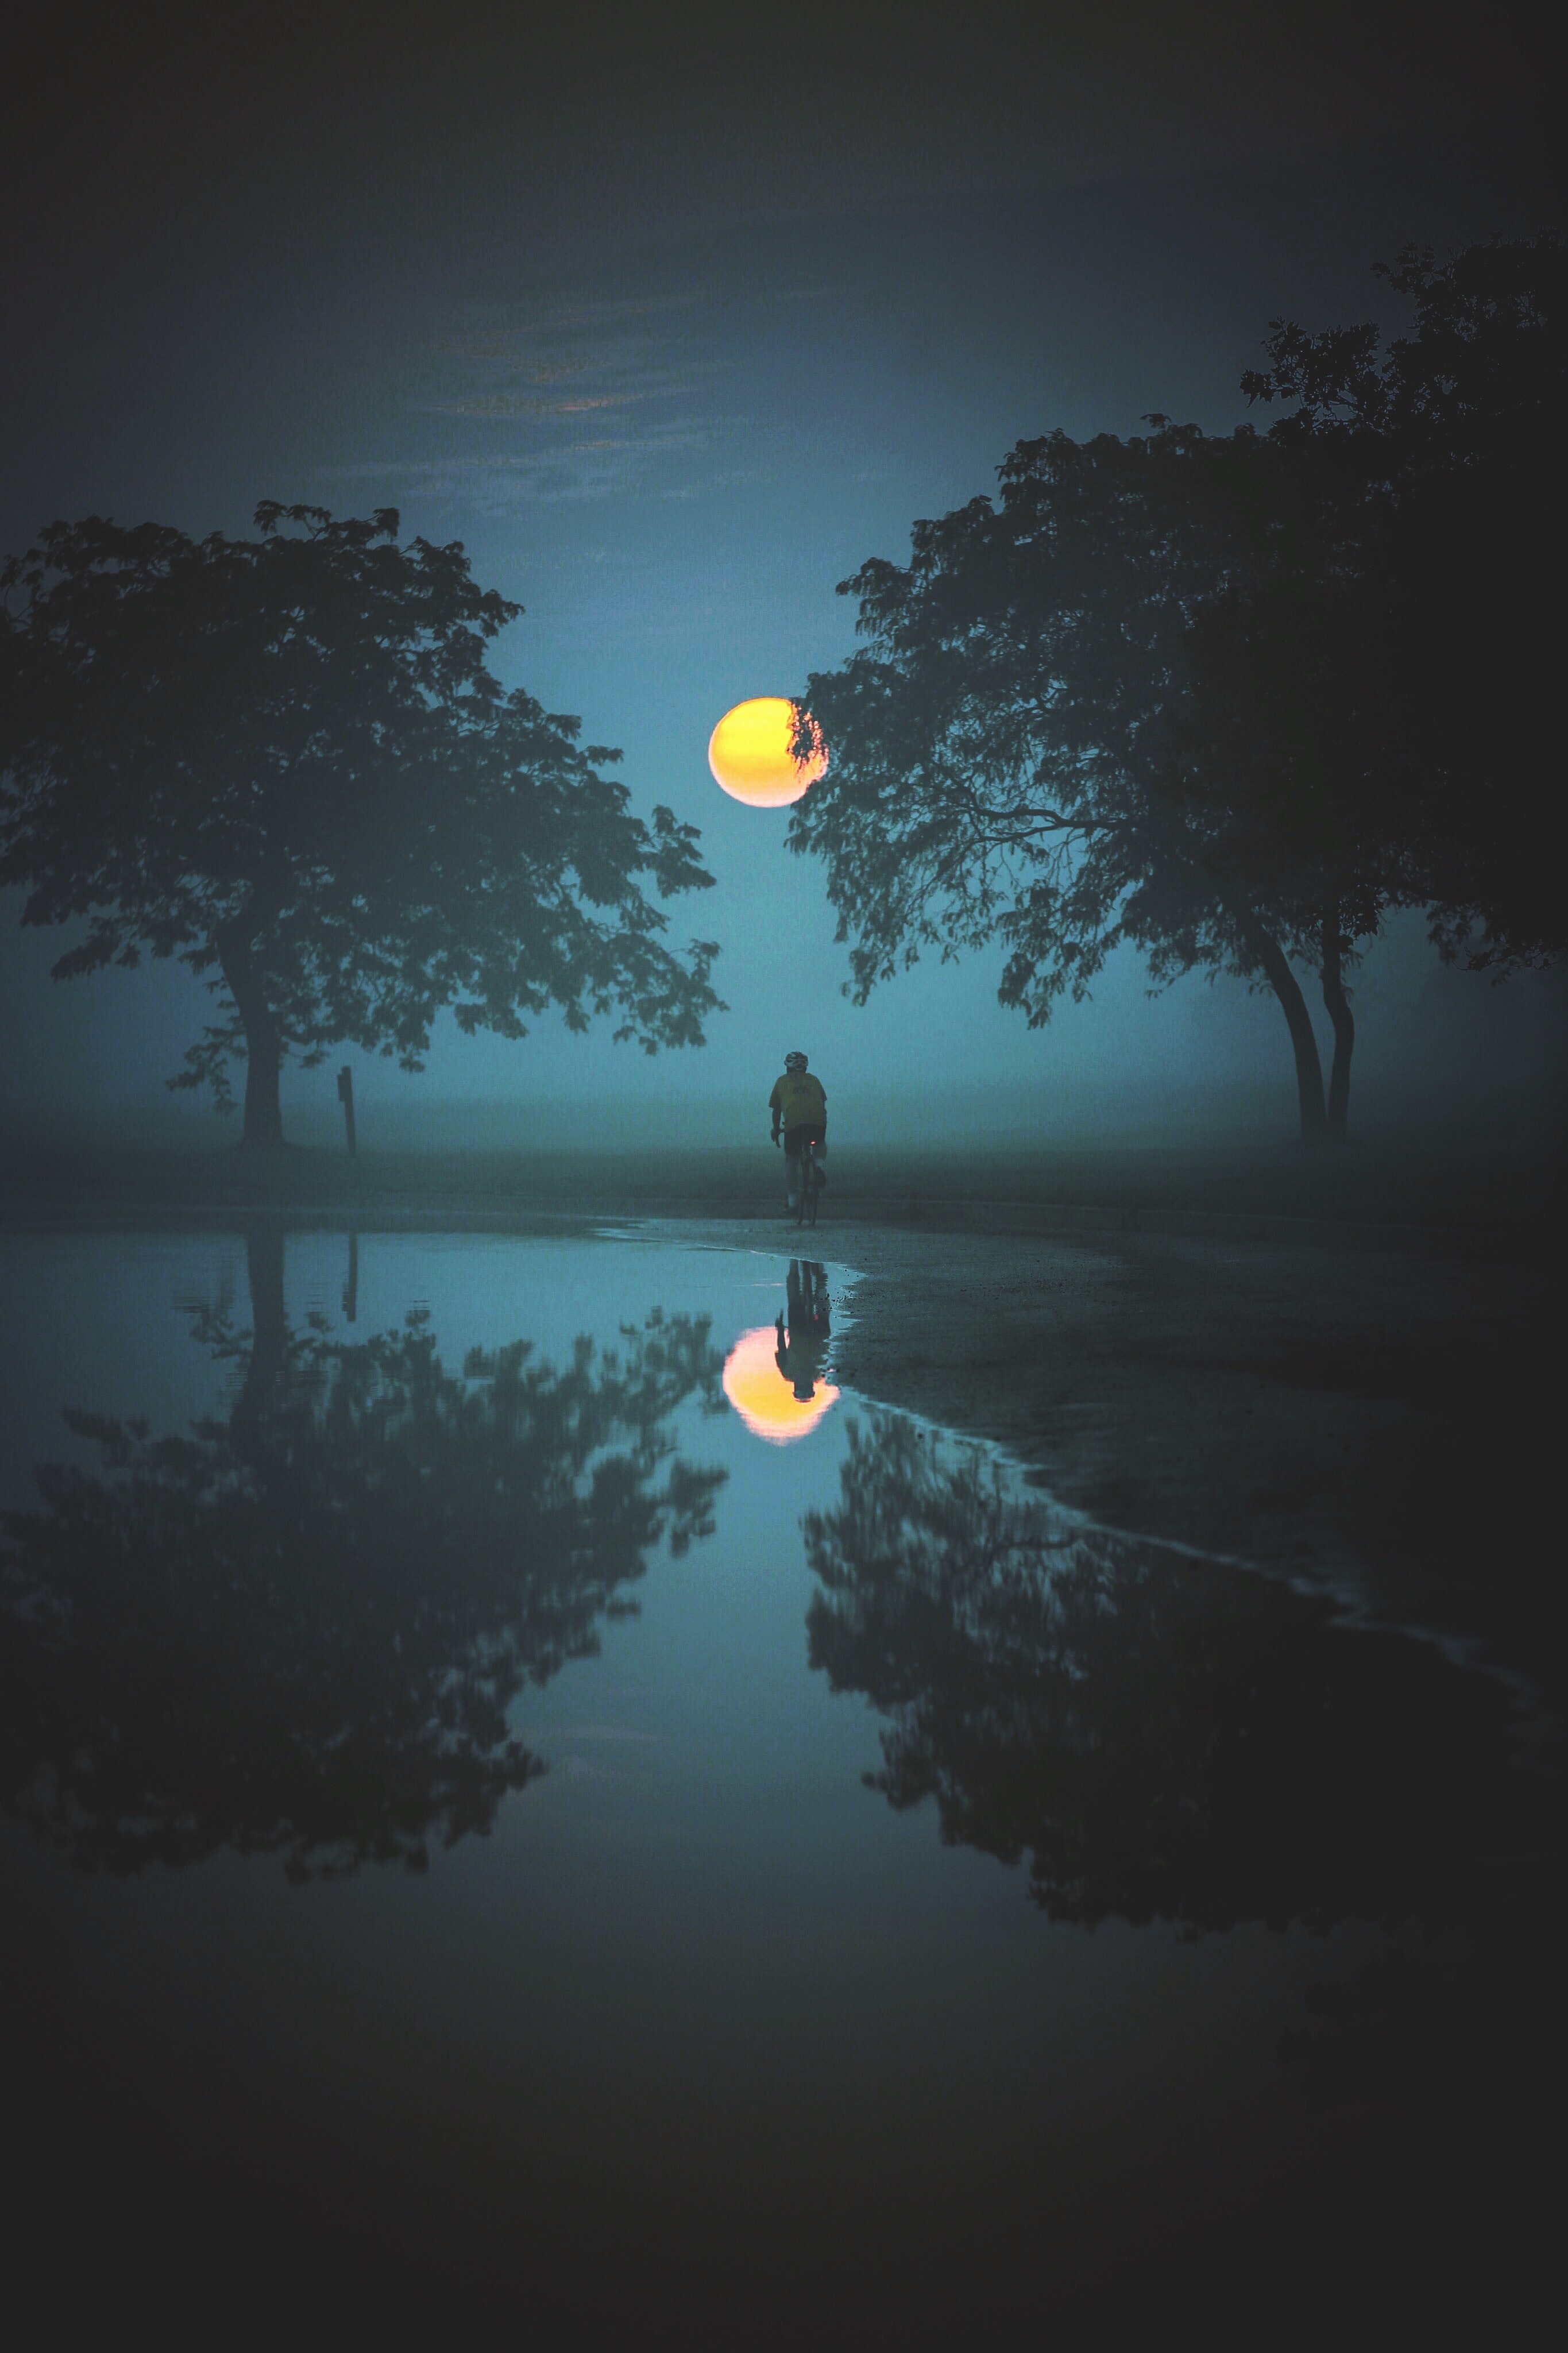 A water reflection picture capturing two bushy trees and a person standing under the moon.